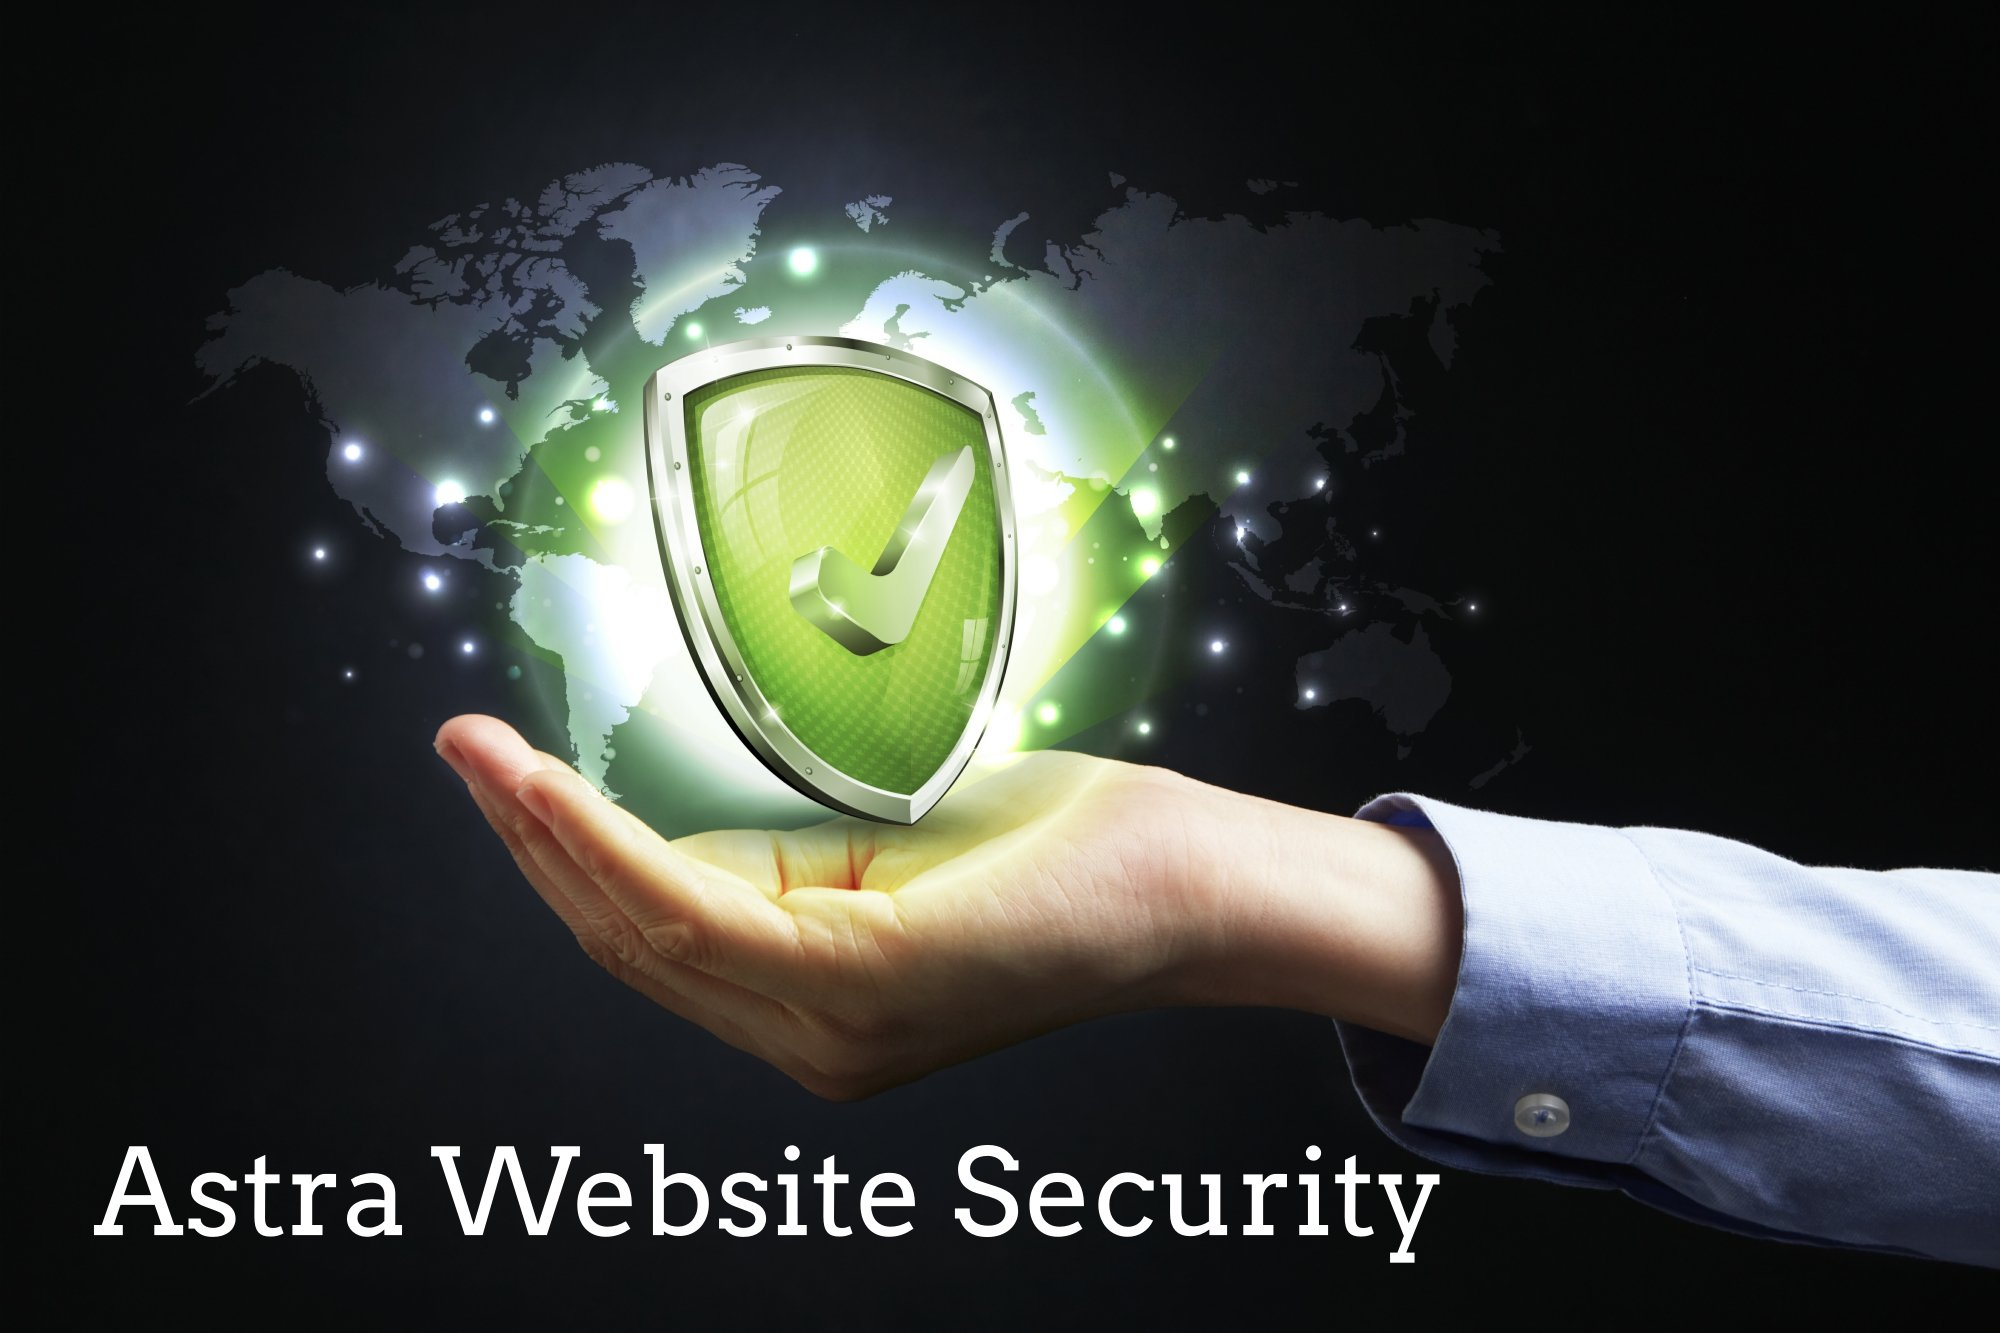 Astra Website Security